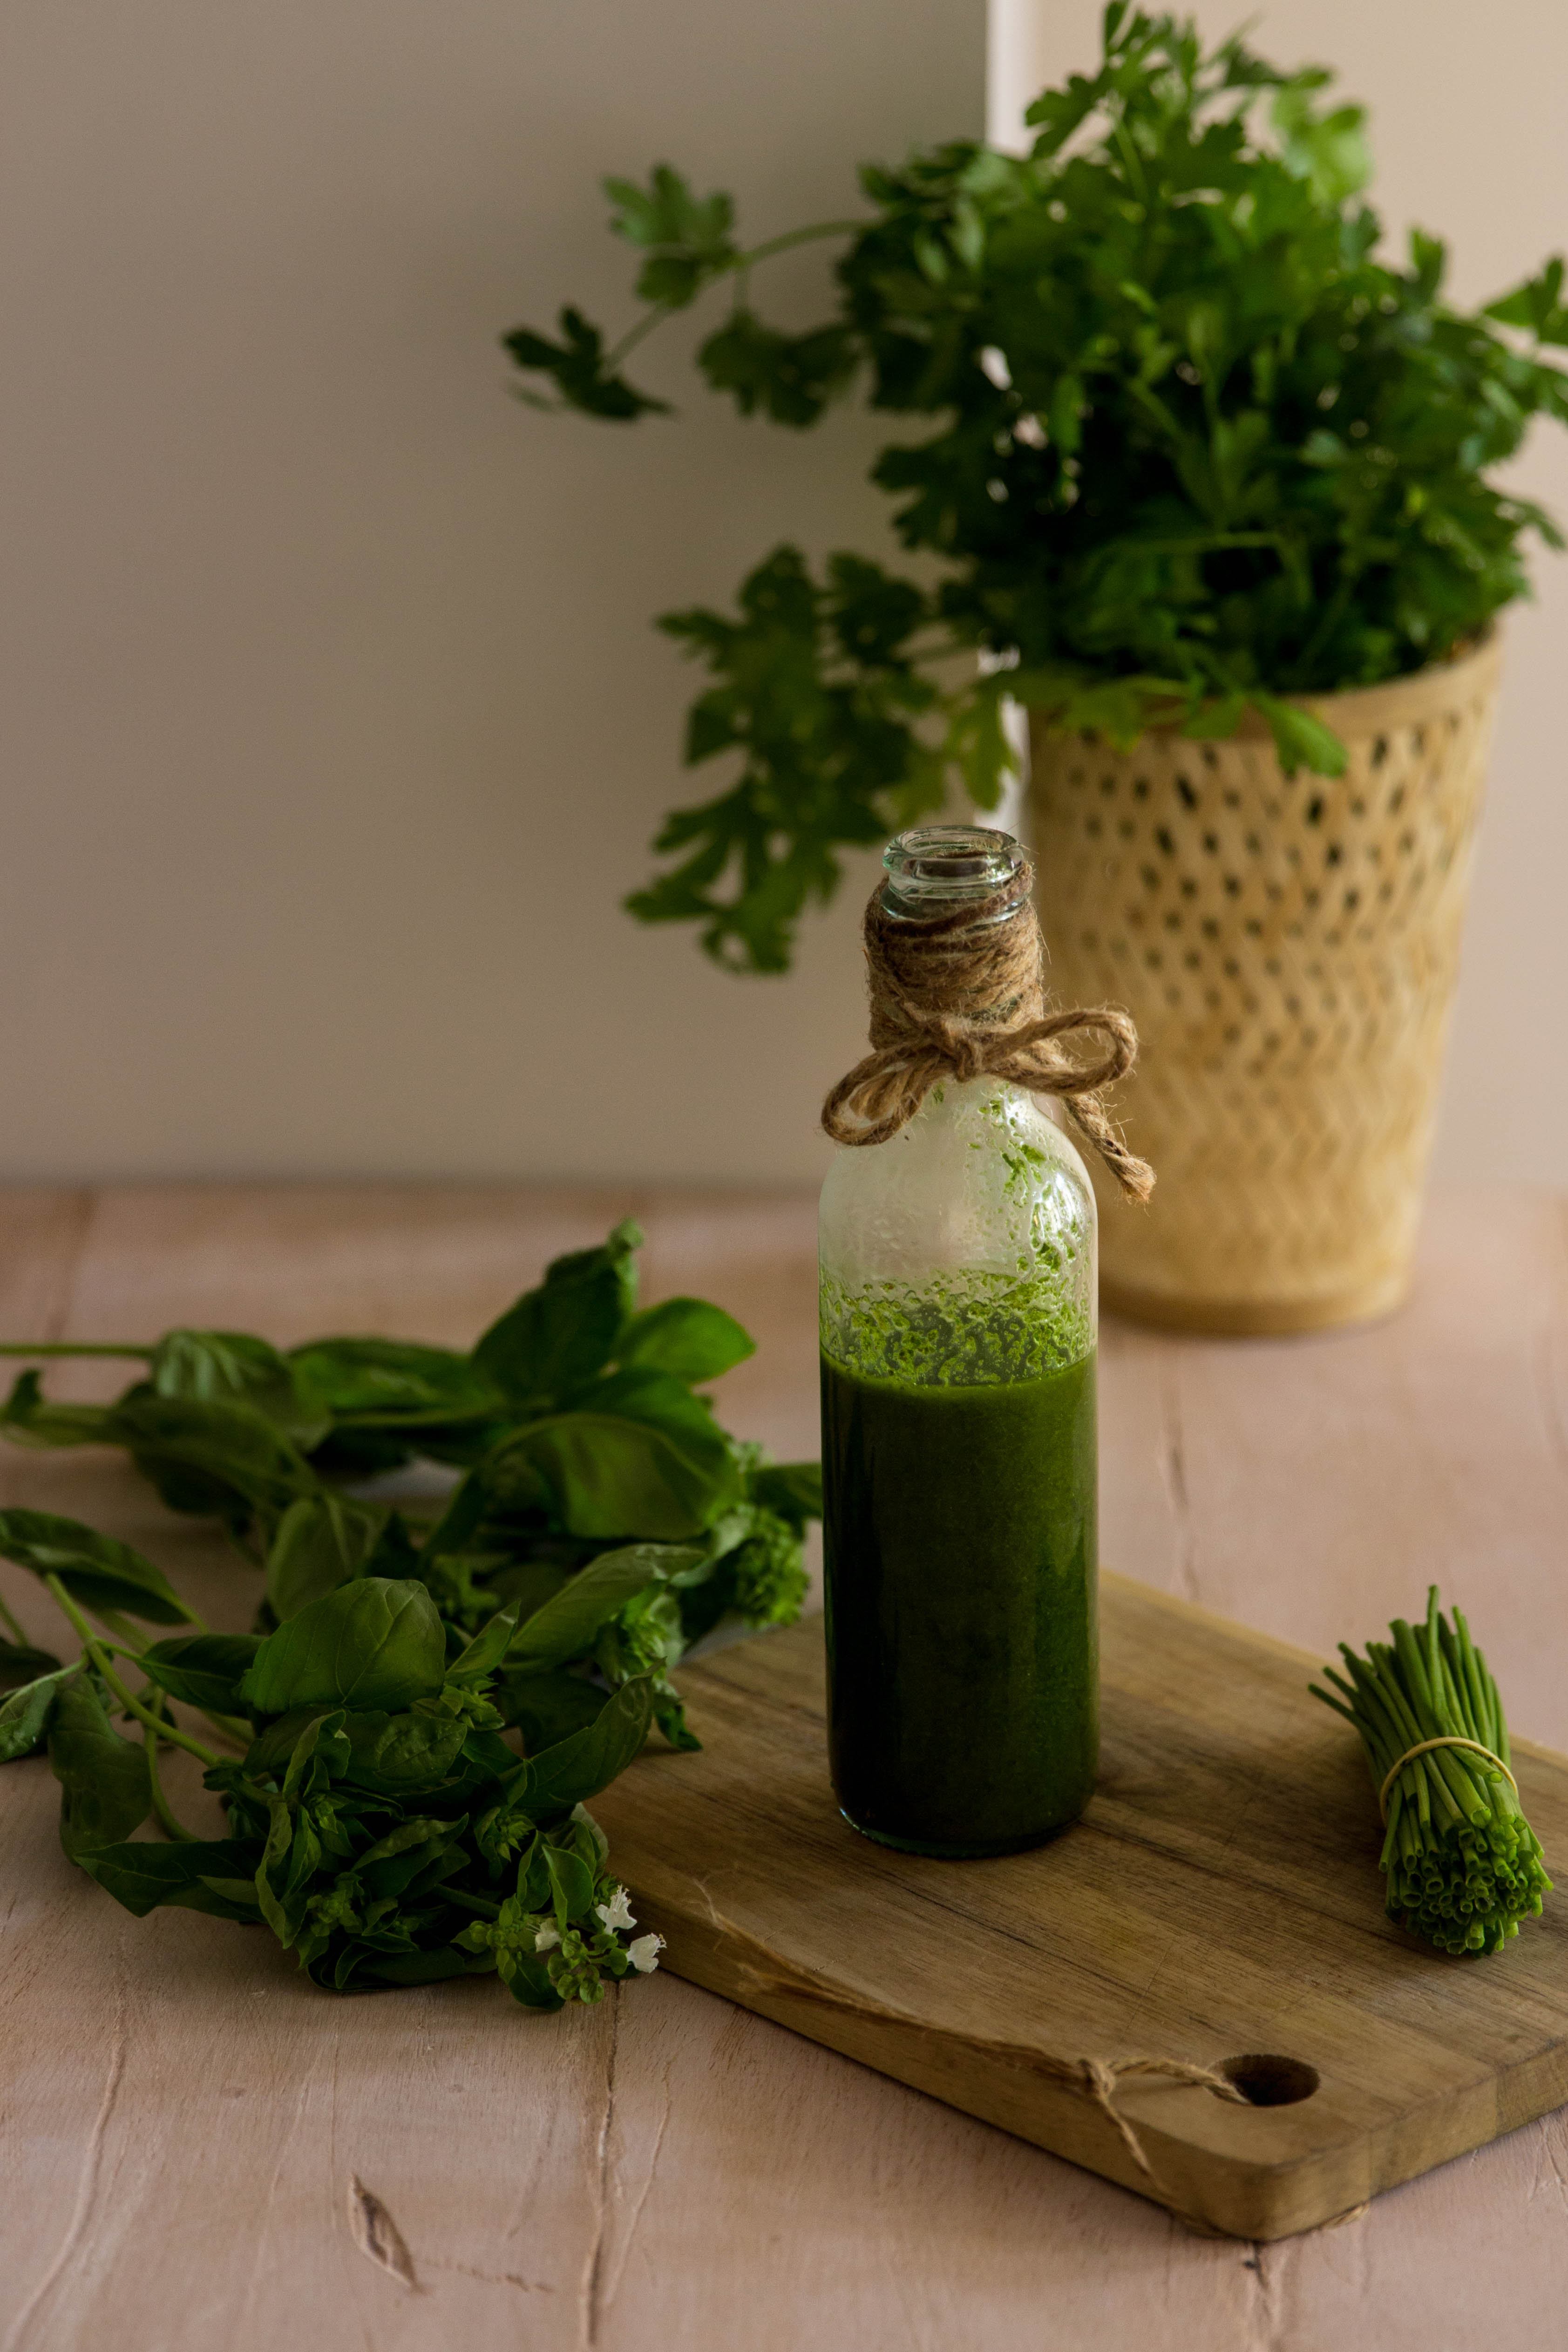 Huile verte - huile d'olive aux herbes aromatiques - DIY food photography